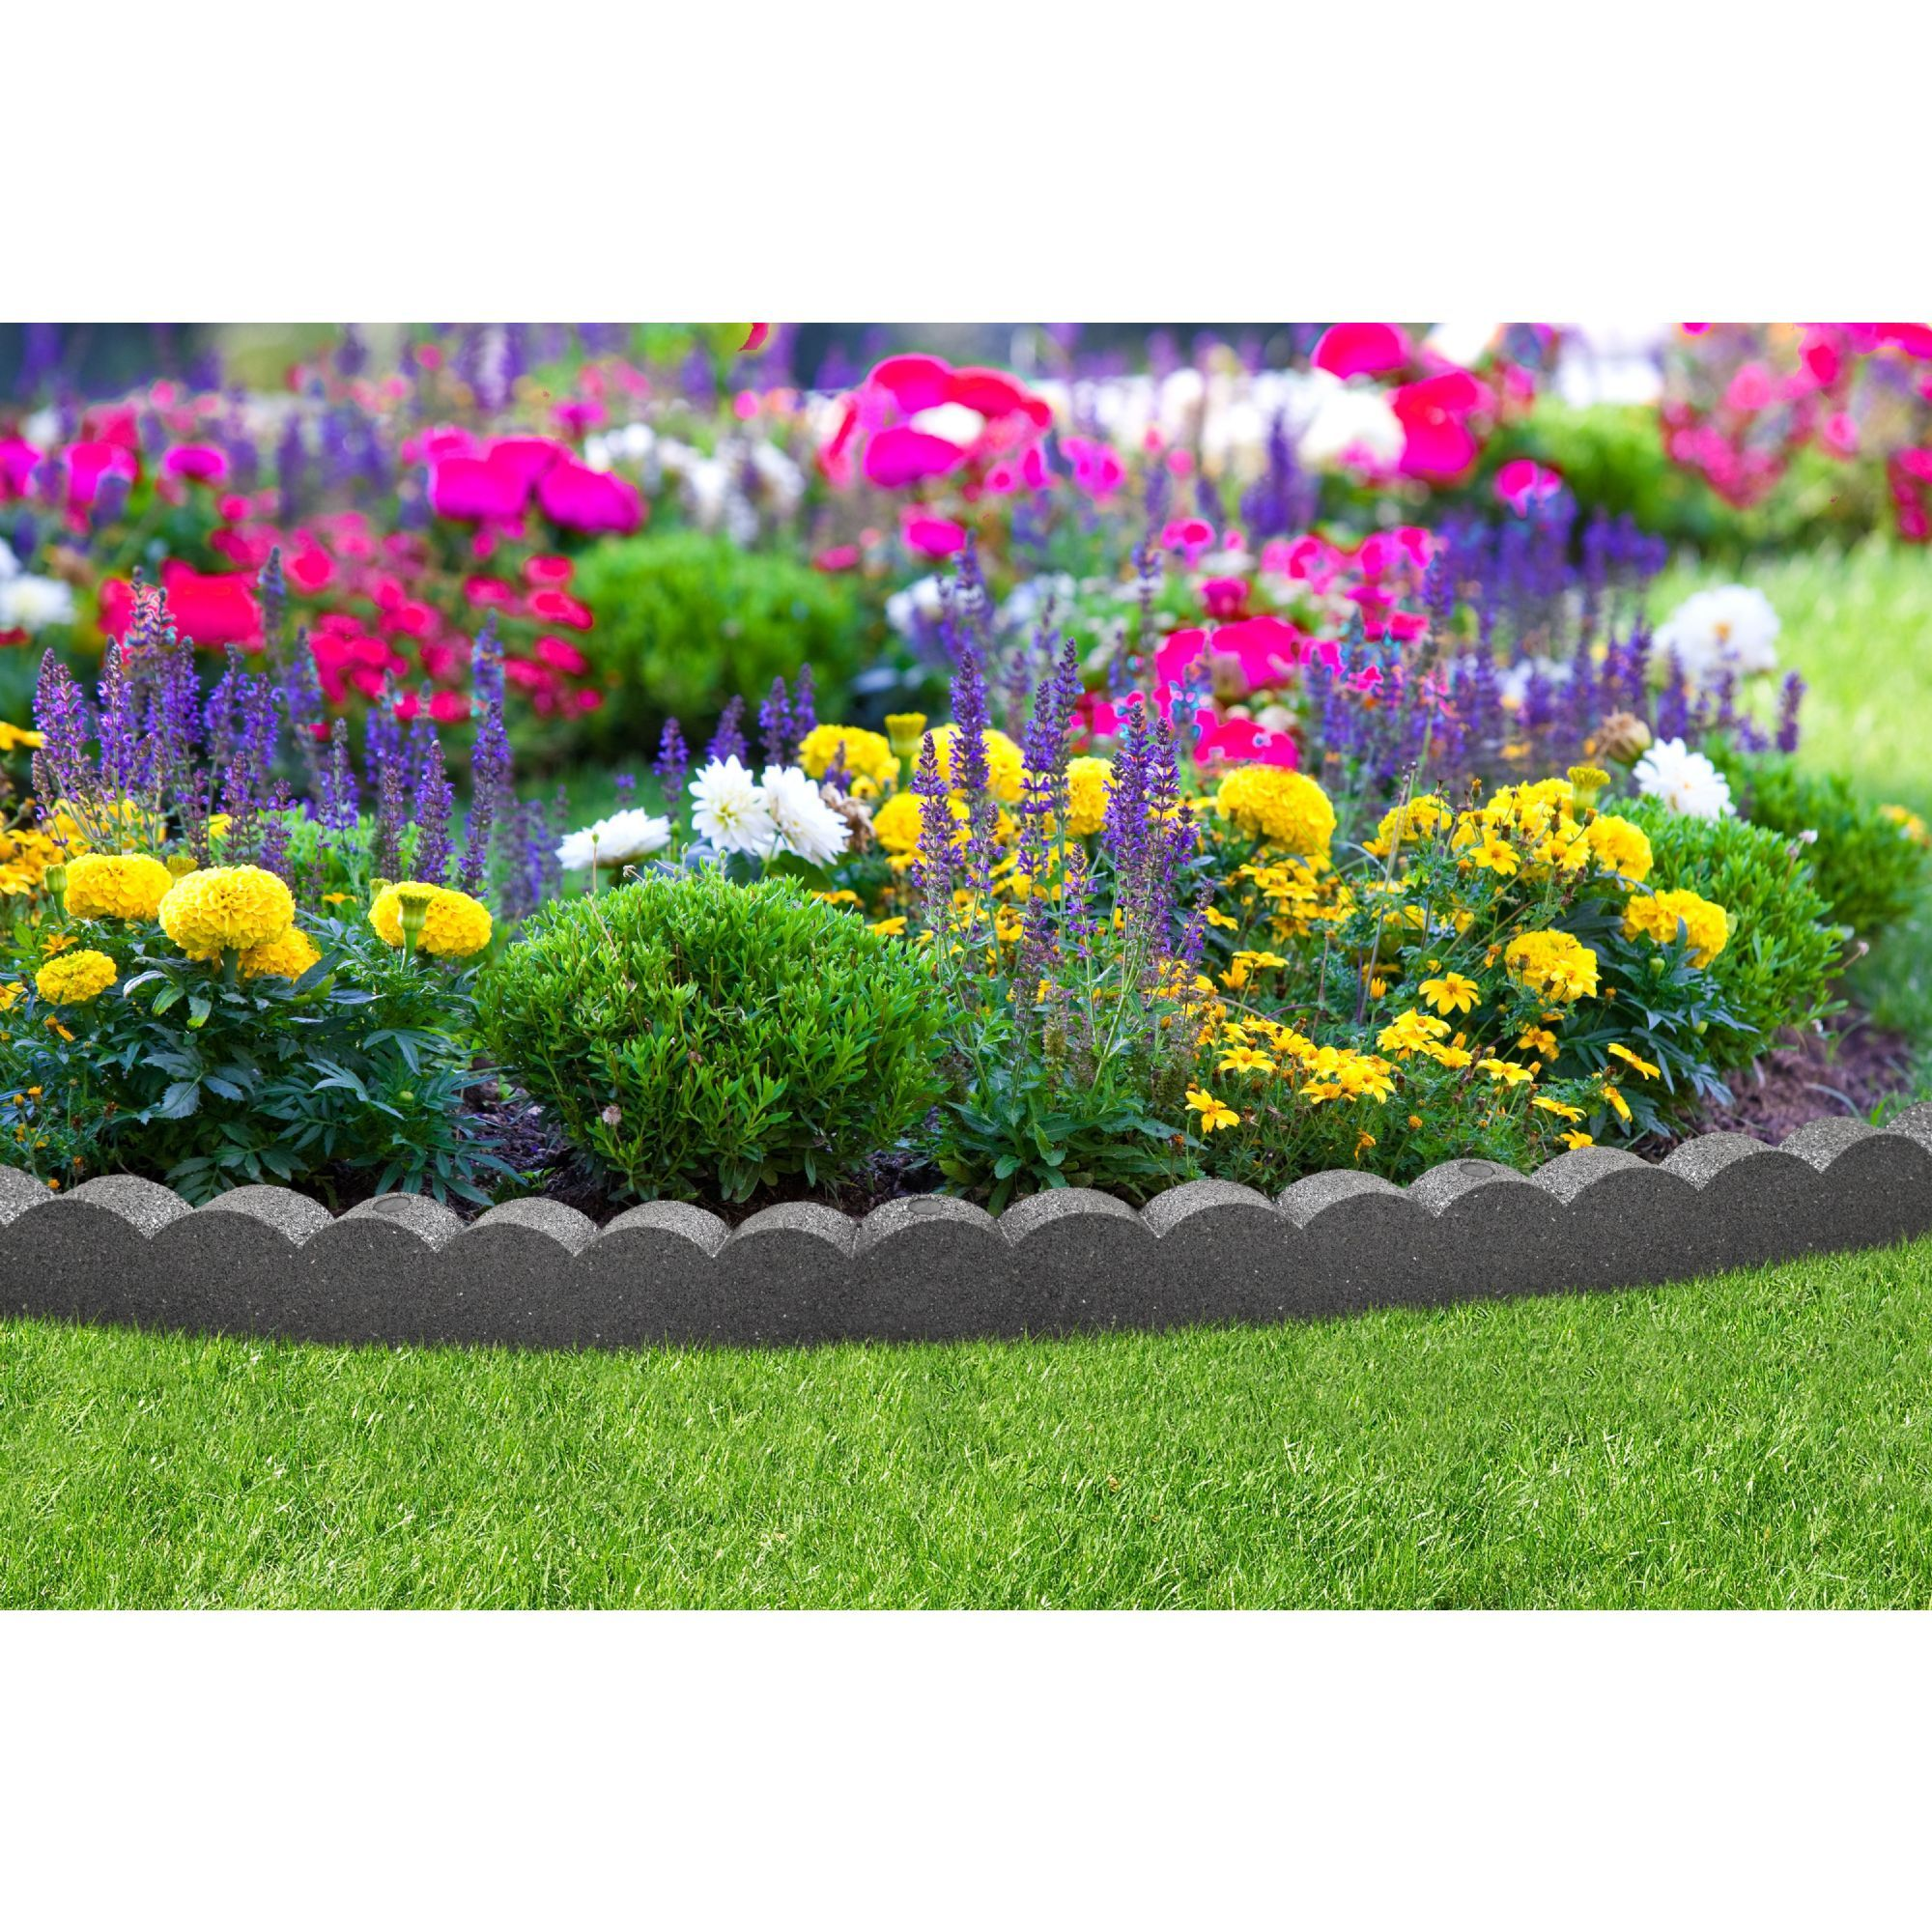 122m Recycled Rubber Edging Flexi Curve Scallop Grey H9cm Lawn Edging Garden Border Edging Recycled Rubber